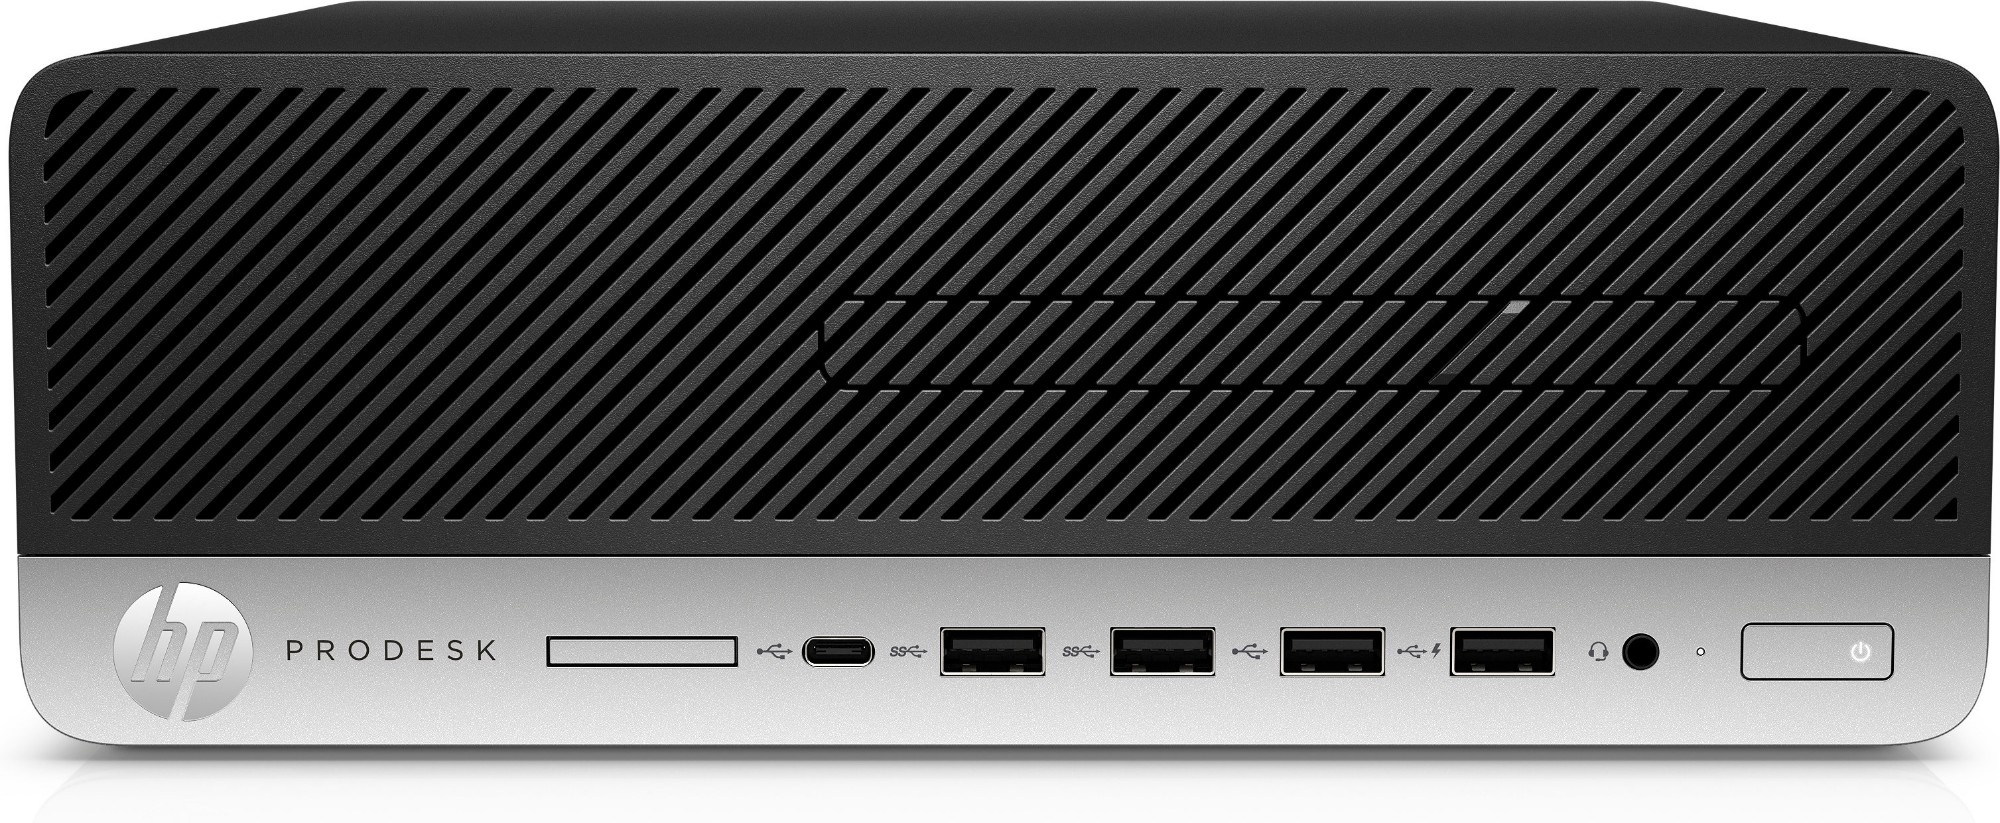 HP ProDesk 600 G3 3.4GHz i5-7500 SFF Black, Silver PC